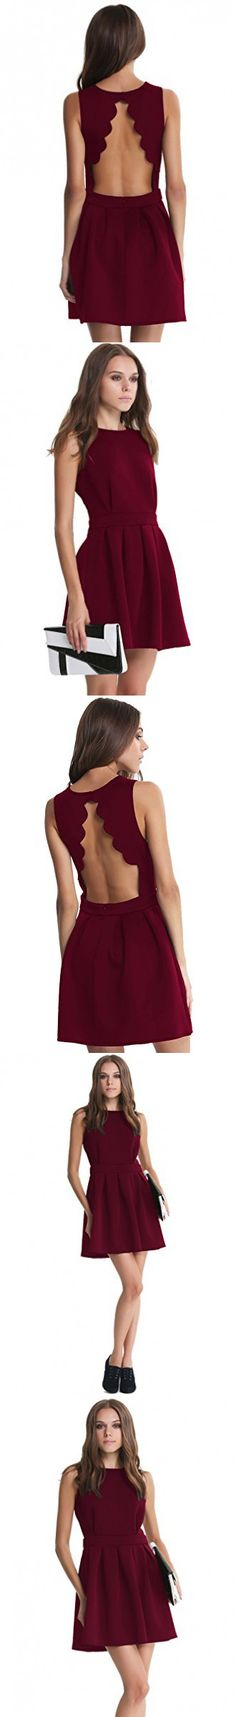 SheIn Women's Sleeveless Backless Scalloped Pleated Party Dress Medium Burgundy